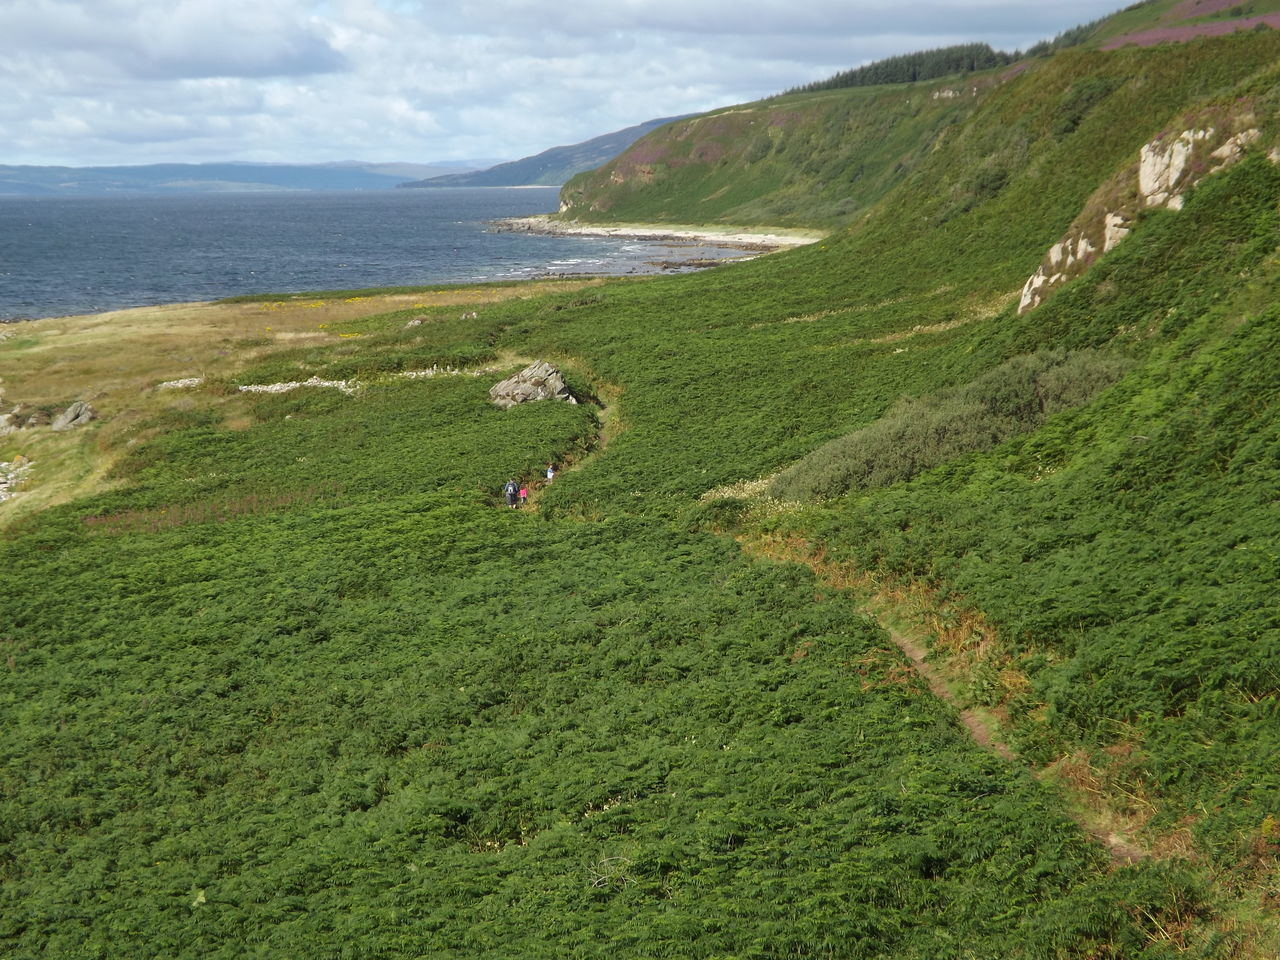 Adventure Beauty In Nature Cultures Day Green Hiking Isle Of Arran  Landscape Mountain One Person Outdoors Scotland Sea Trail Trip Walking Path